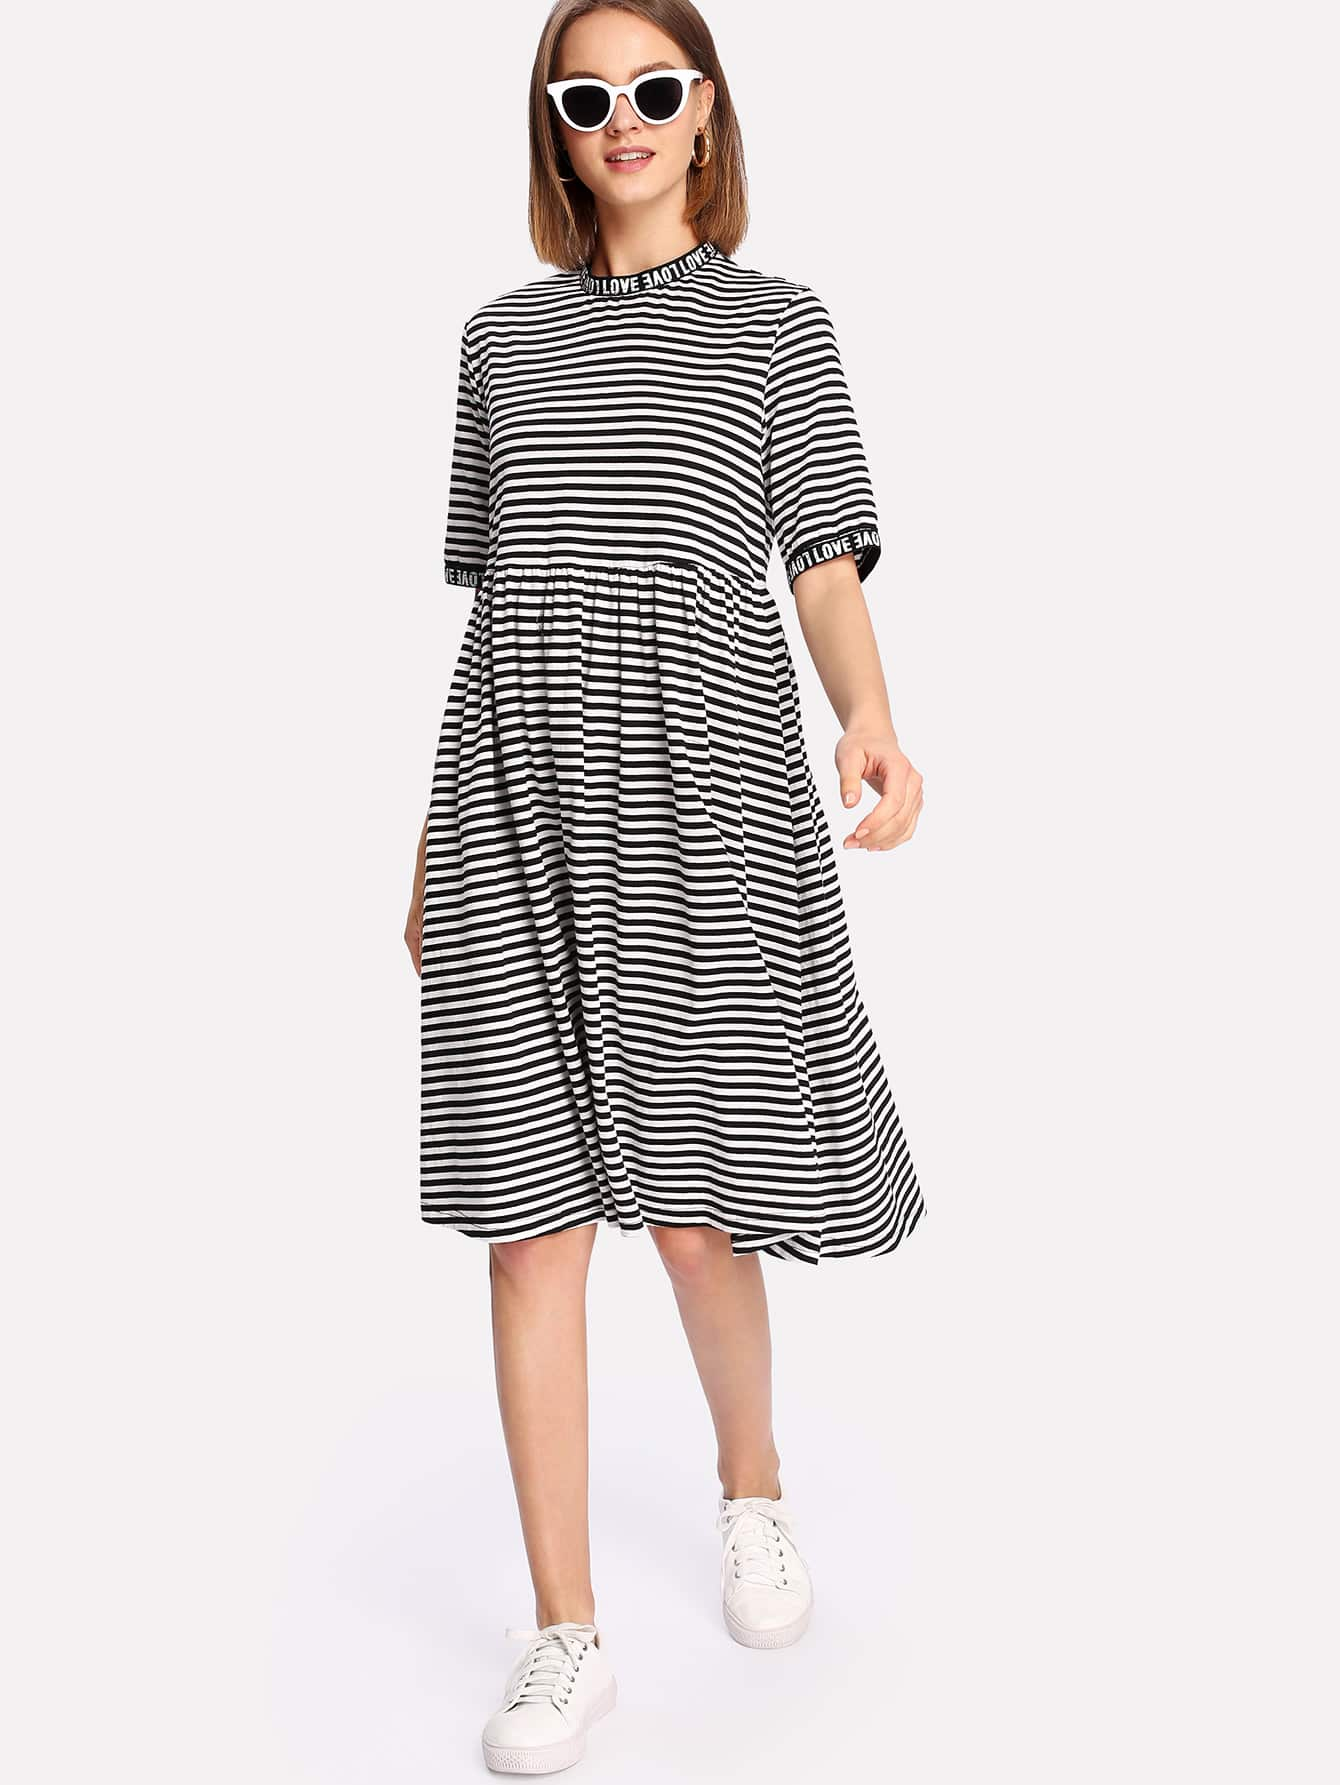 Letter Print Neck And Cuff Striped Dress letter print neck and cuff striped dress